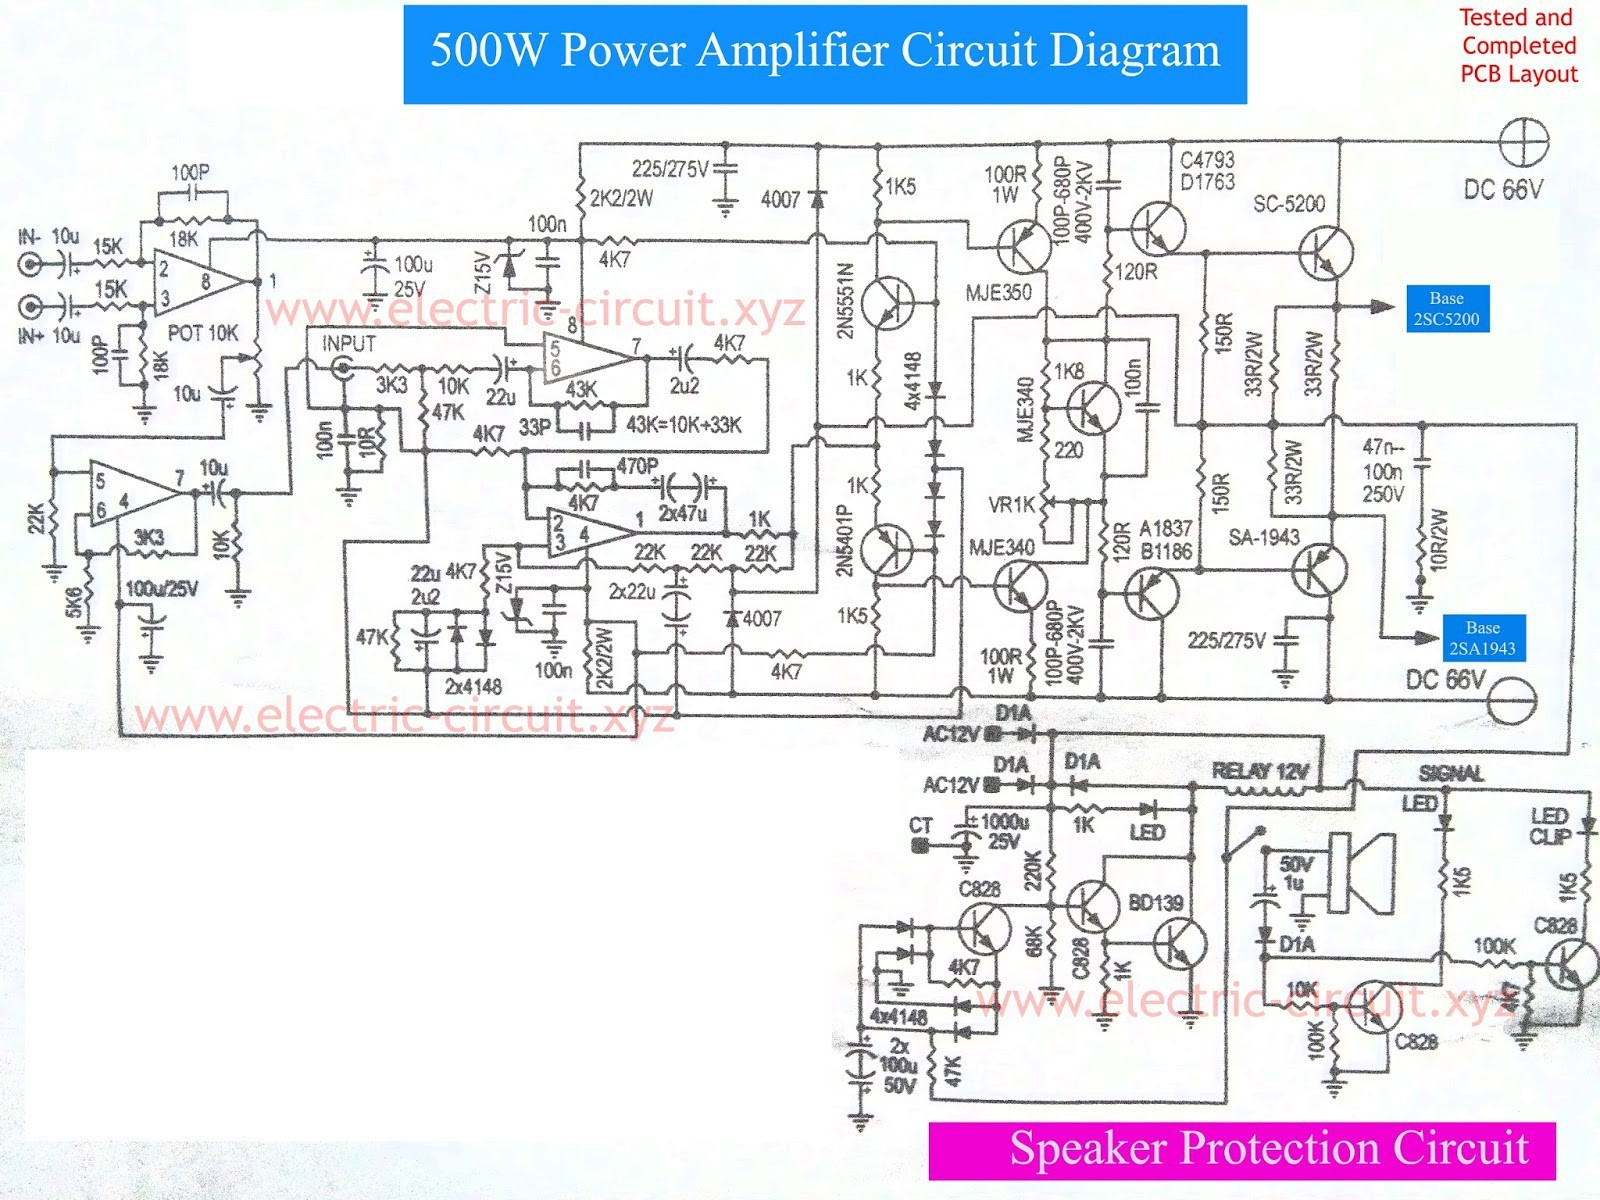 Car Audio Amplifier Circuit Diagram Image Result For High Power Elegant Of